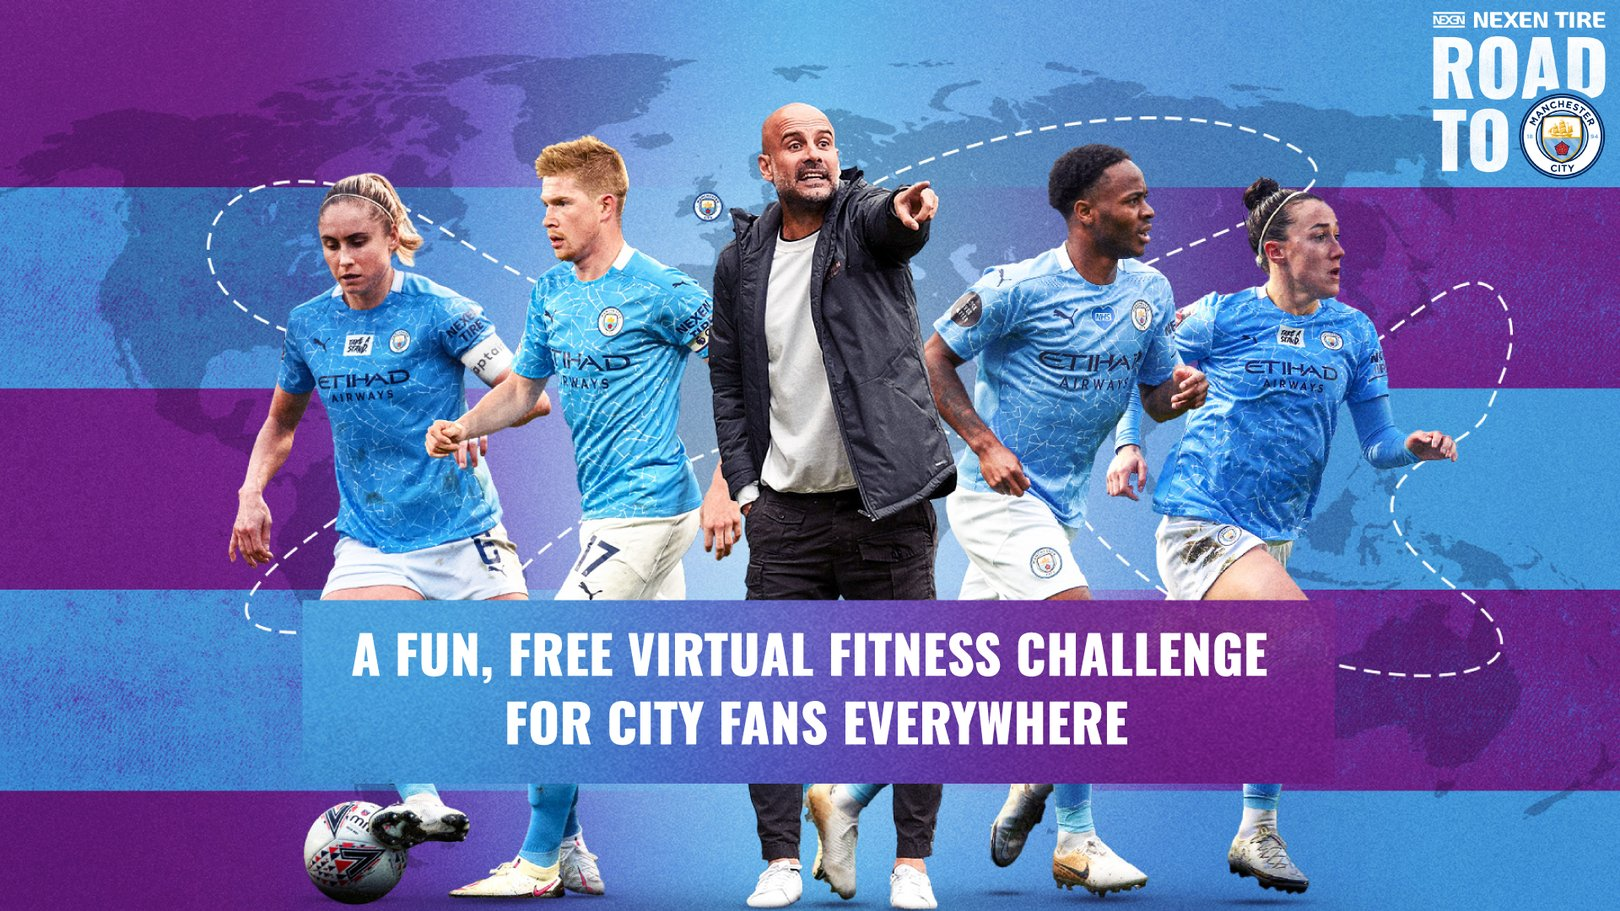 Get set for the Nexen Road to Man City virtual fitness challenge!